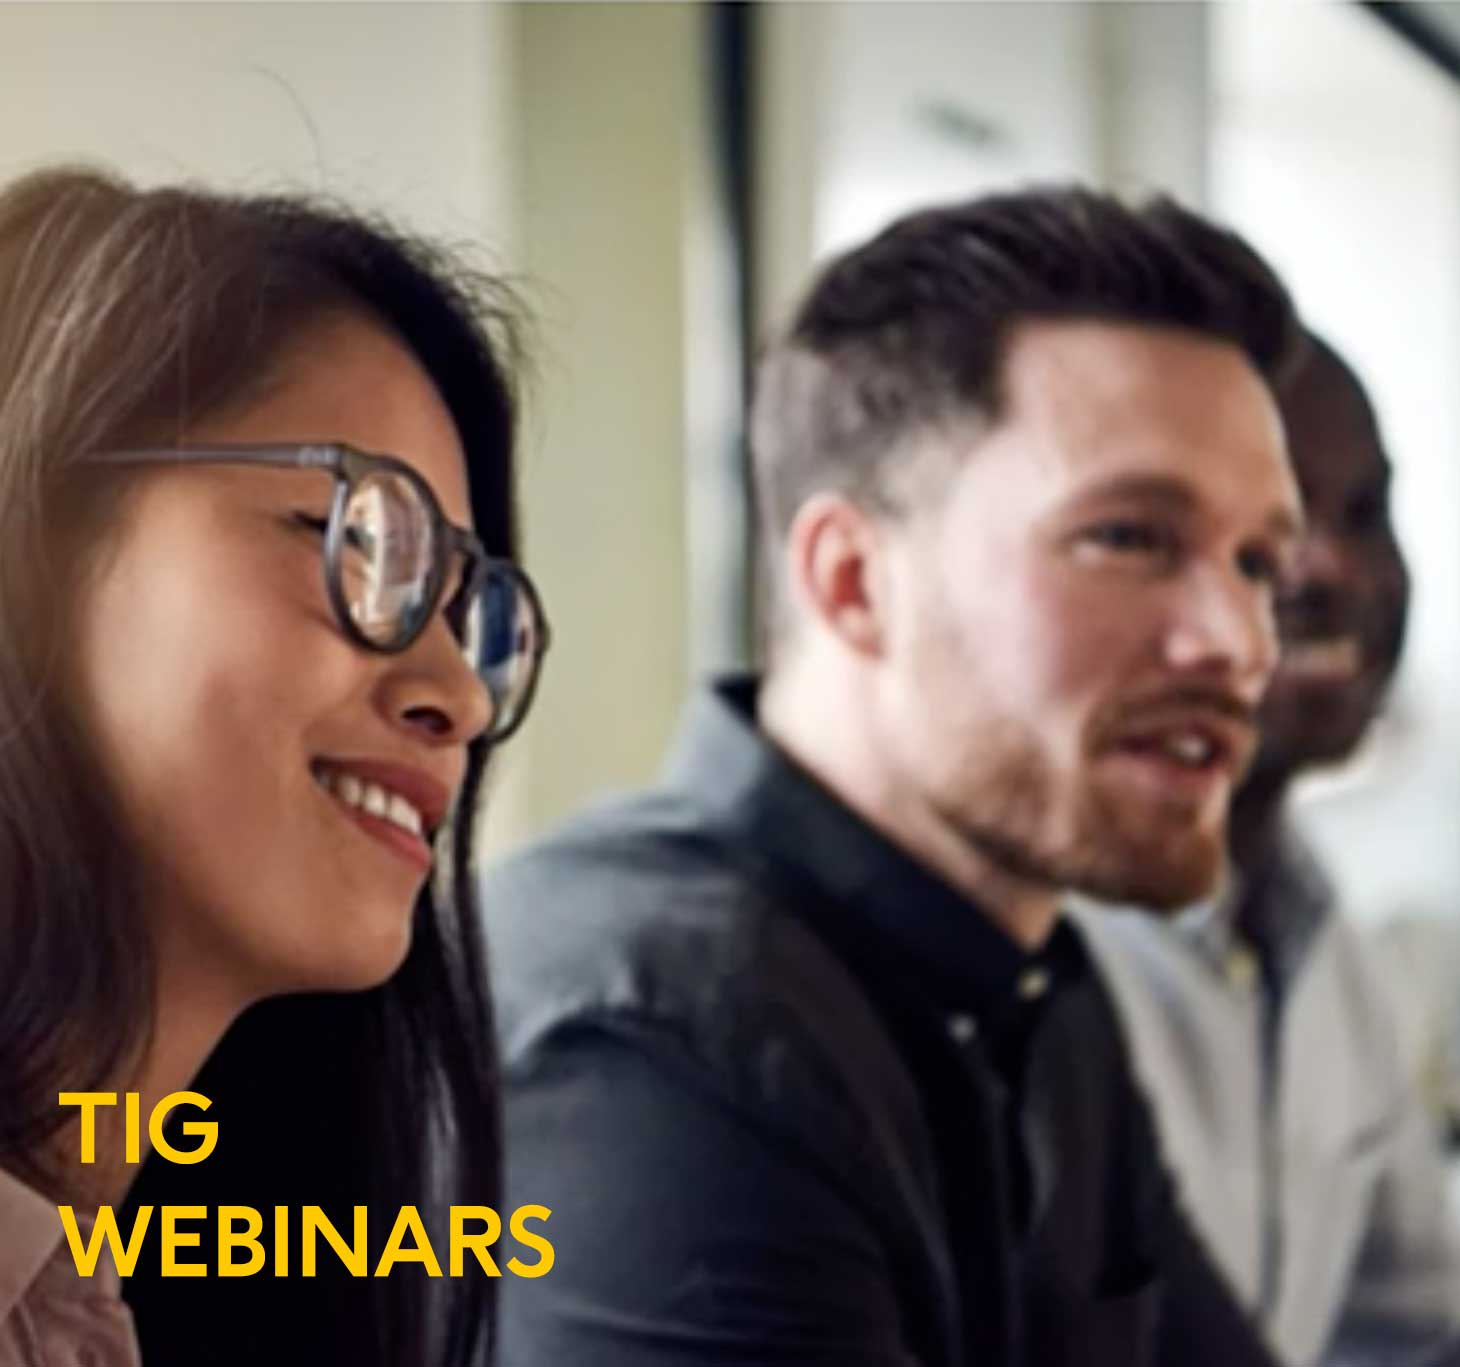 Technological Innovations Group announces a Wave of Webinars